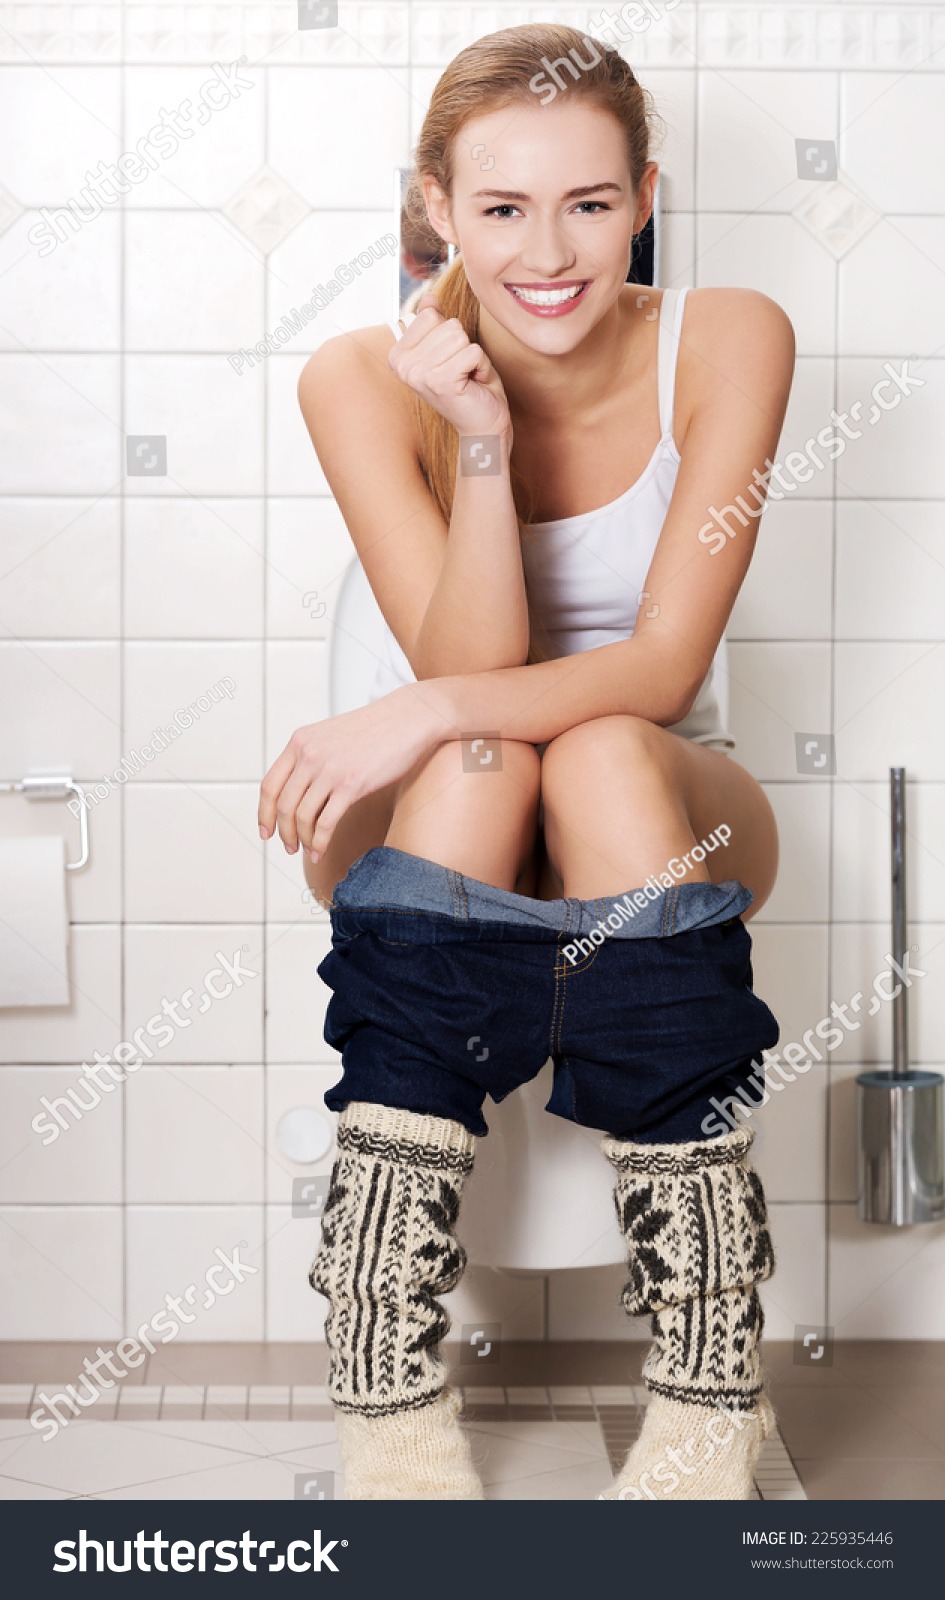 Young Woman Sitting On Toilet High-Res Stock Photo - Getty